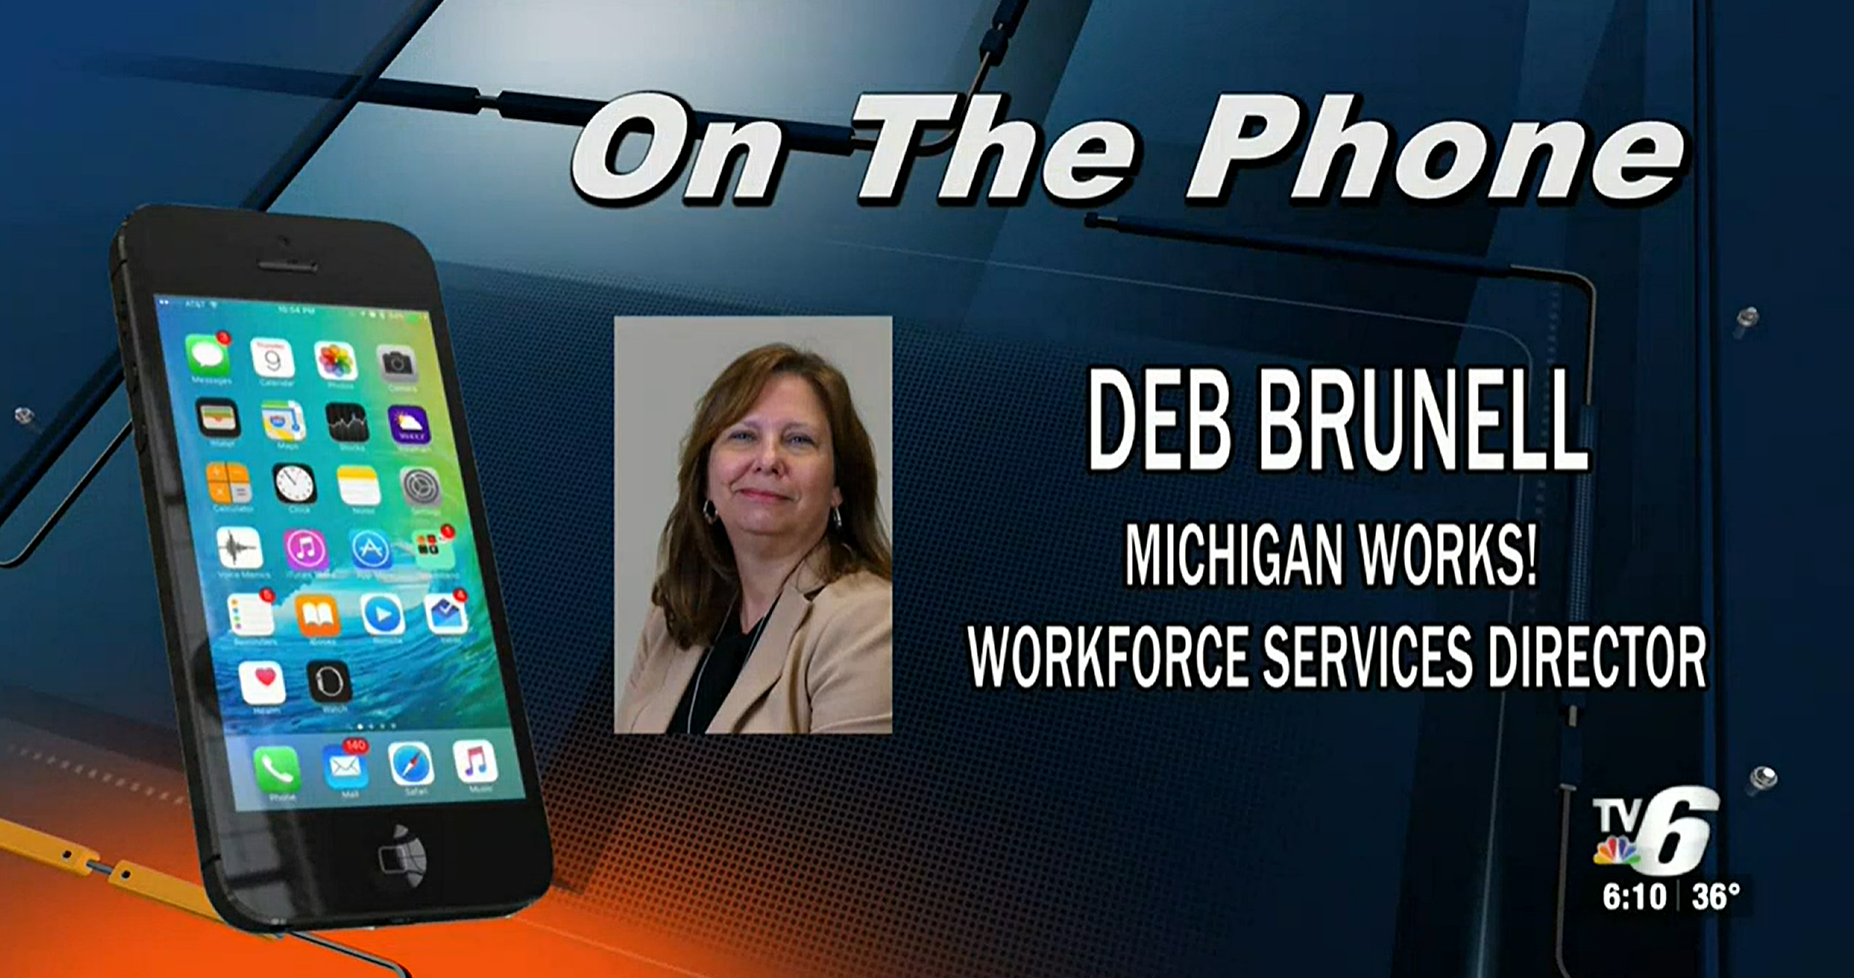 A screenshot from a video interview featuring Debb Brunell and TV 6.